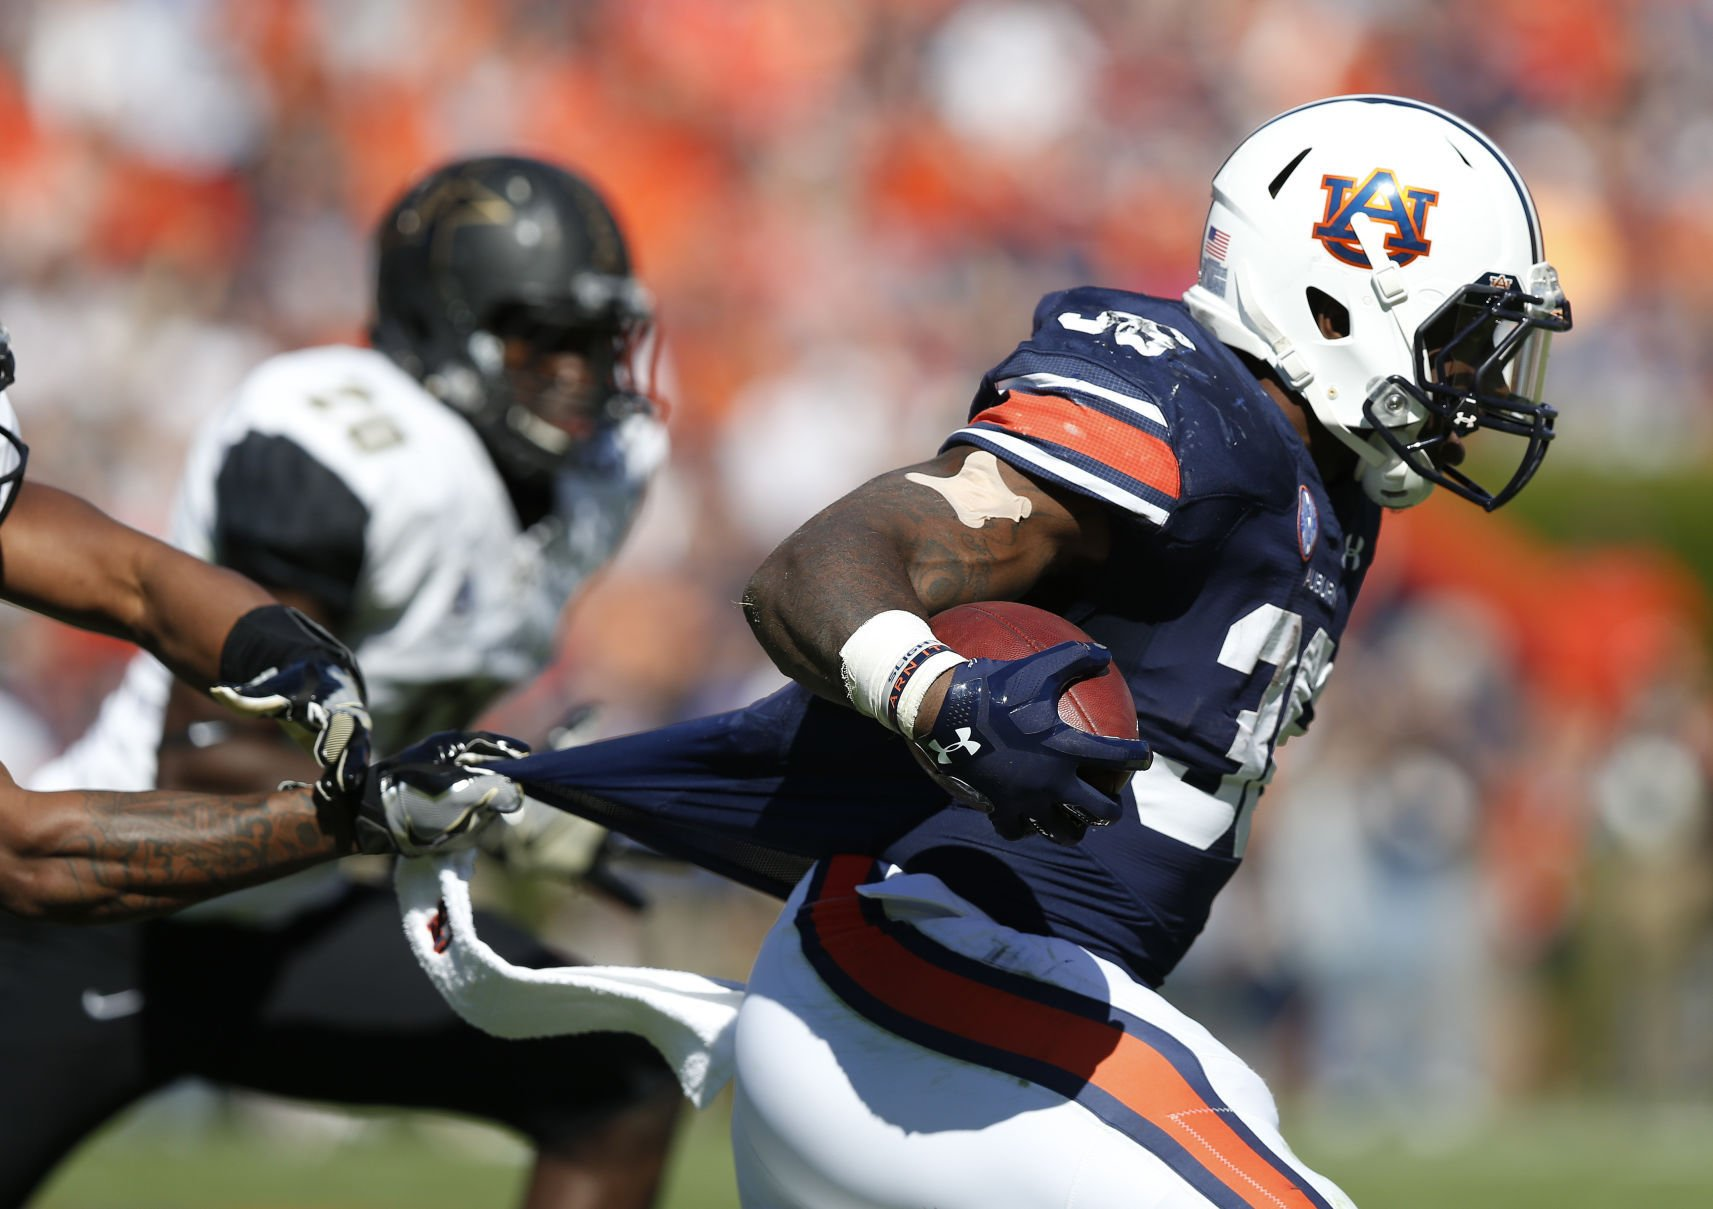 Auburn Blows Mississippi State Out 49-10; Kerryon Johnson Scores 3 TDs